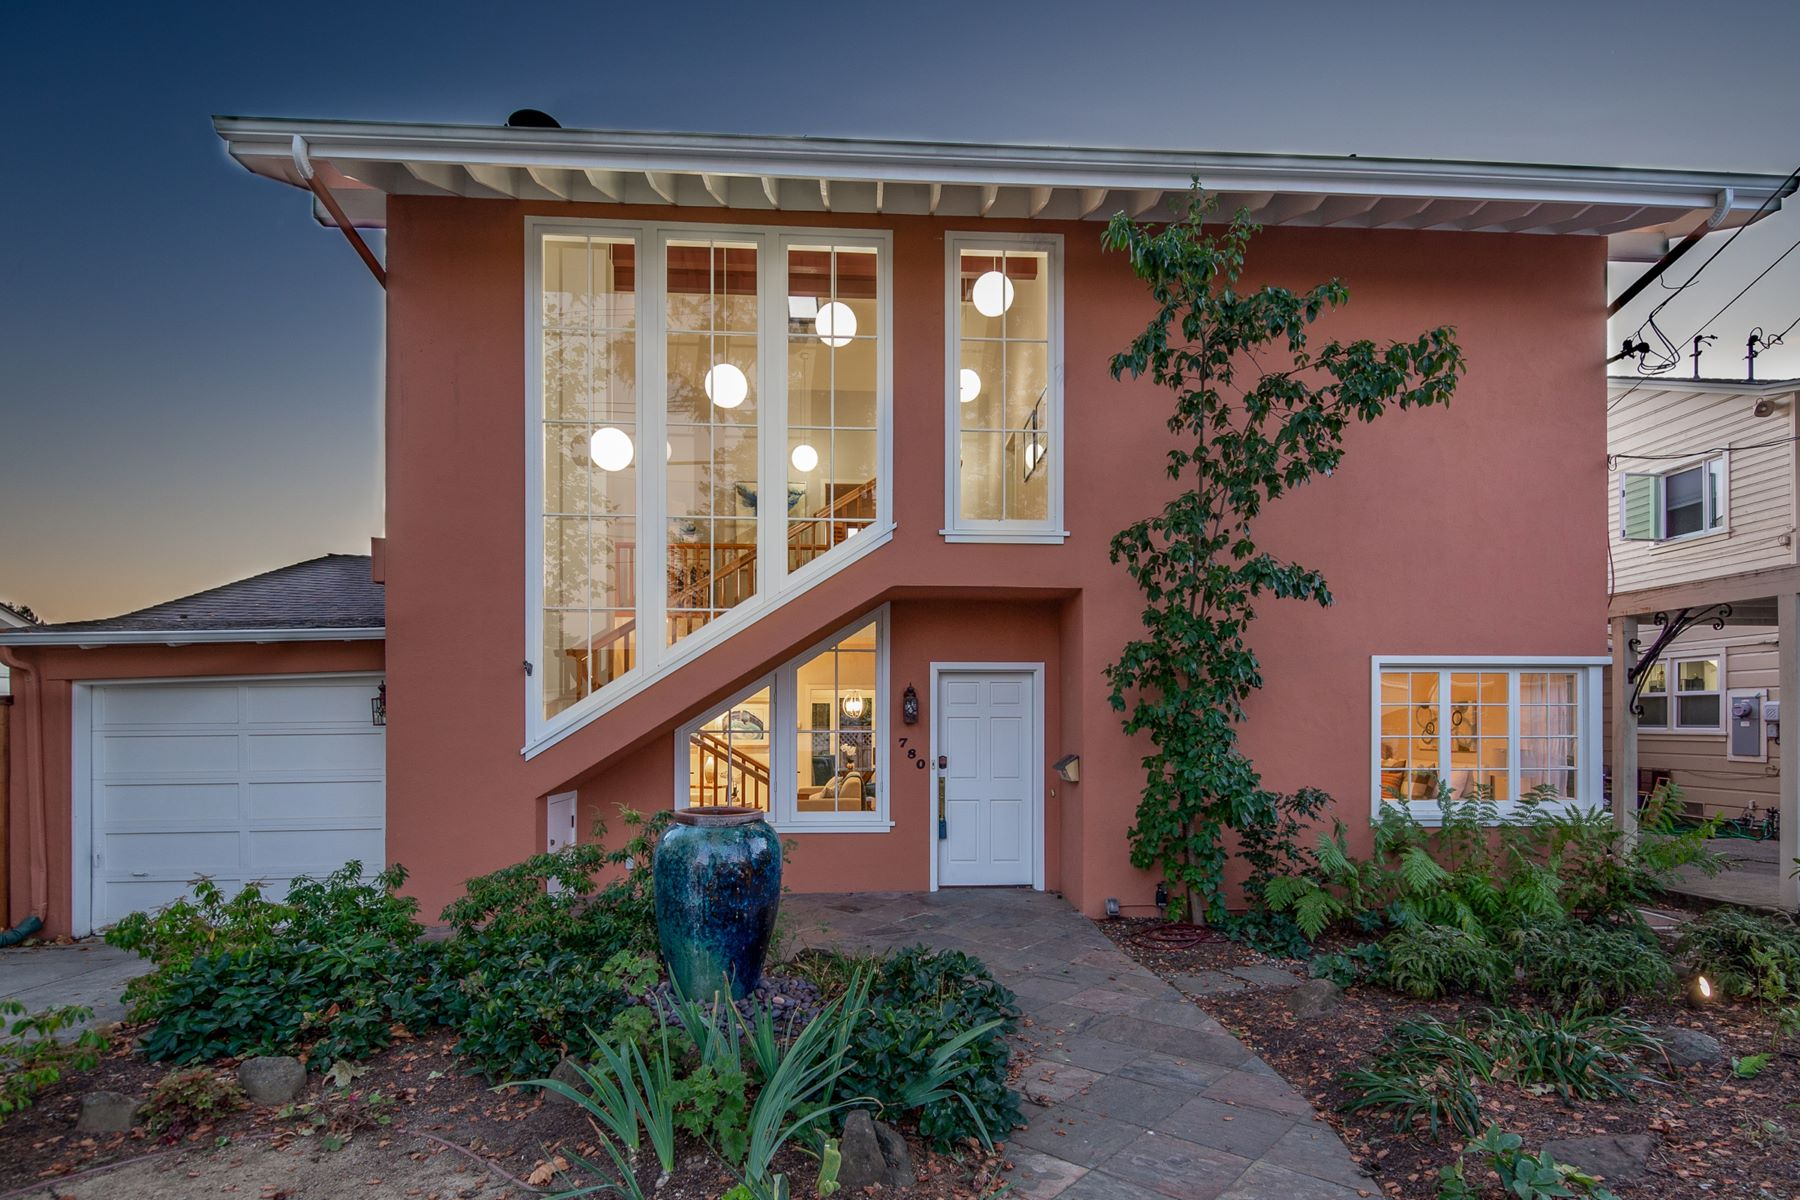 Single Family Homes for Sale at Contemporary With Bay Views 780 Creston Road Berkeley, California 94708 United States